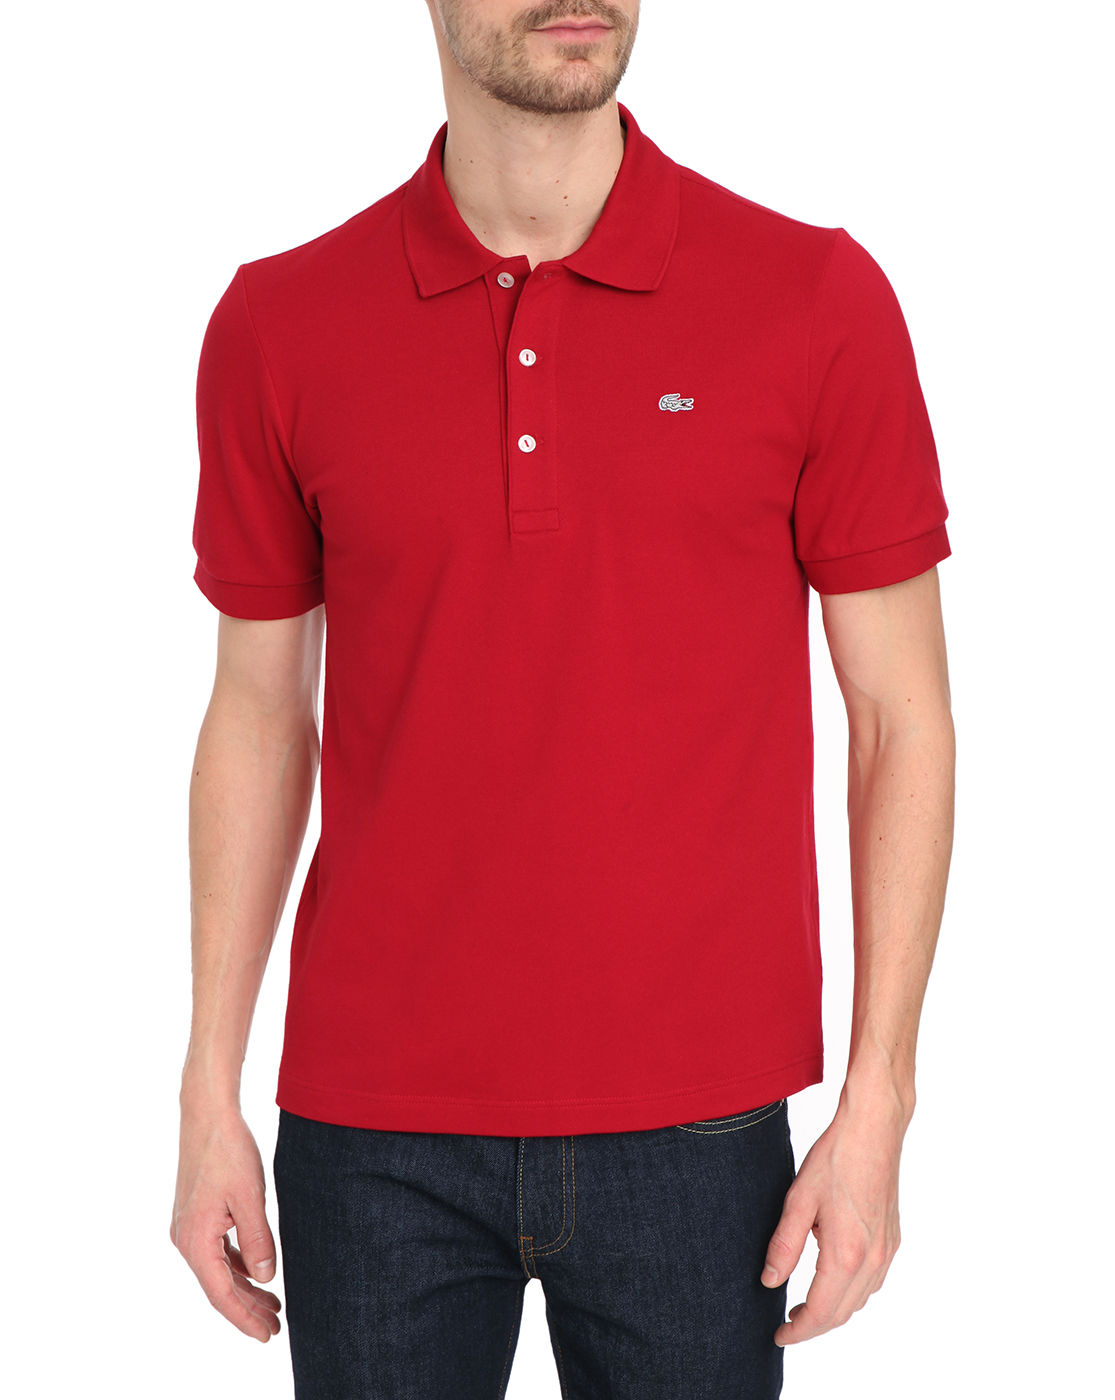 lacoste red slim fit polo shirt ss in red for men lyst. Black Bedroom Furniture Sets. Home Design Ideas